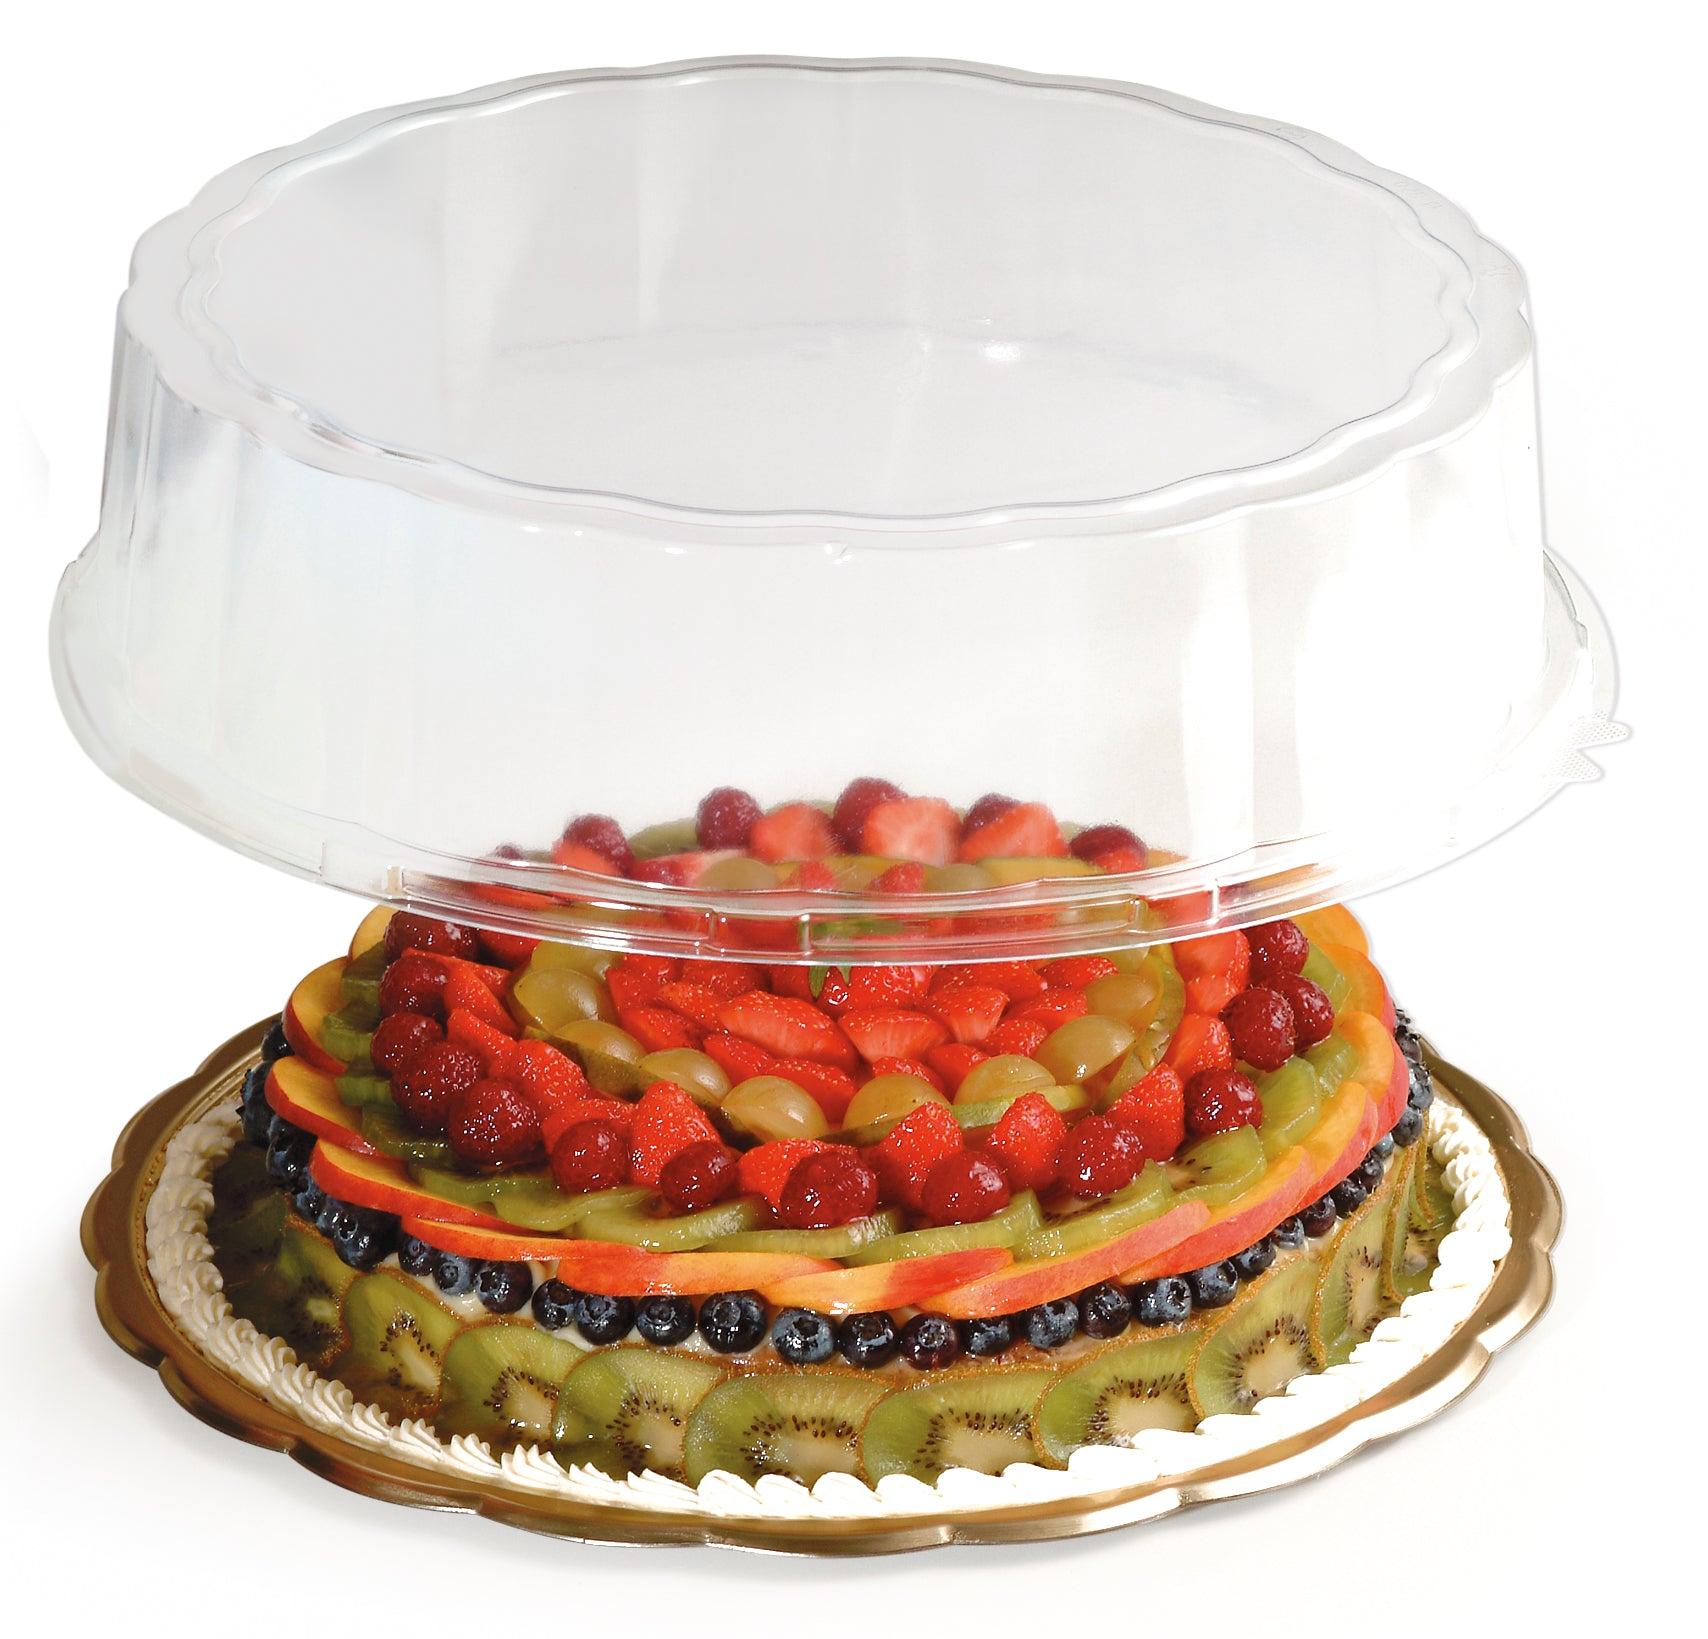 Round Medoro Pastry Tray Lids great for pastries, sandwiches, cakes, cupcakes, appetizers, hors d'oeuvres, cookies, brownies, sushi, savory items, and other edible food products. Wholesale food protection for bakery and restaurants.